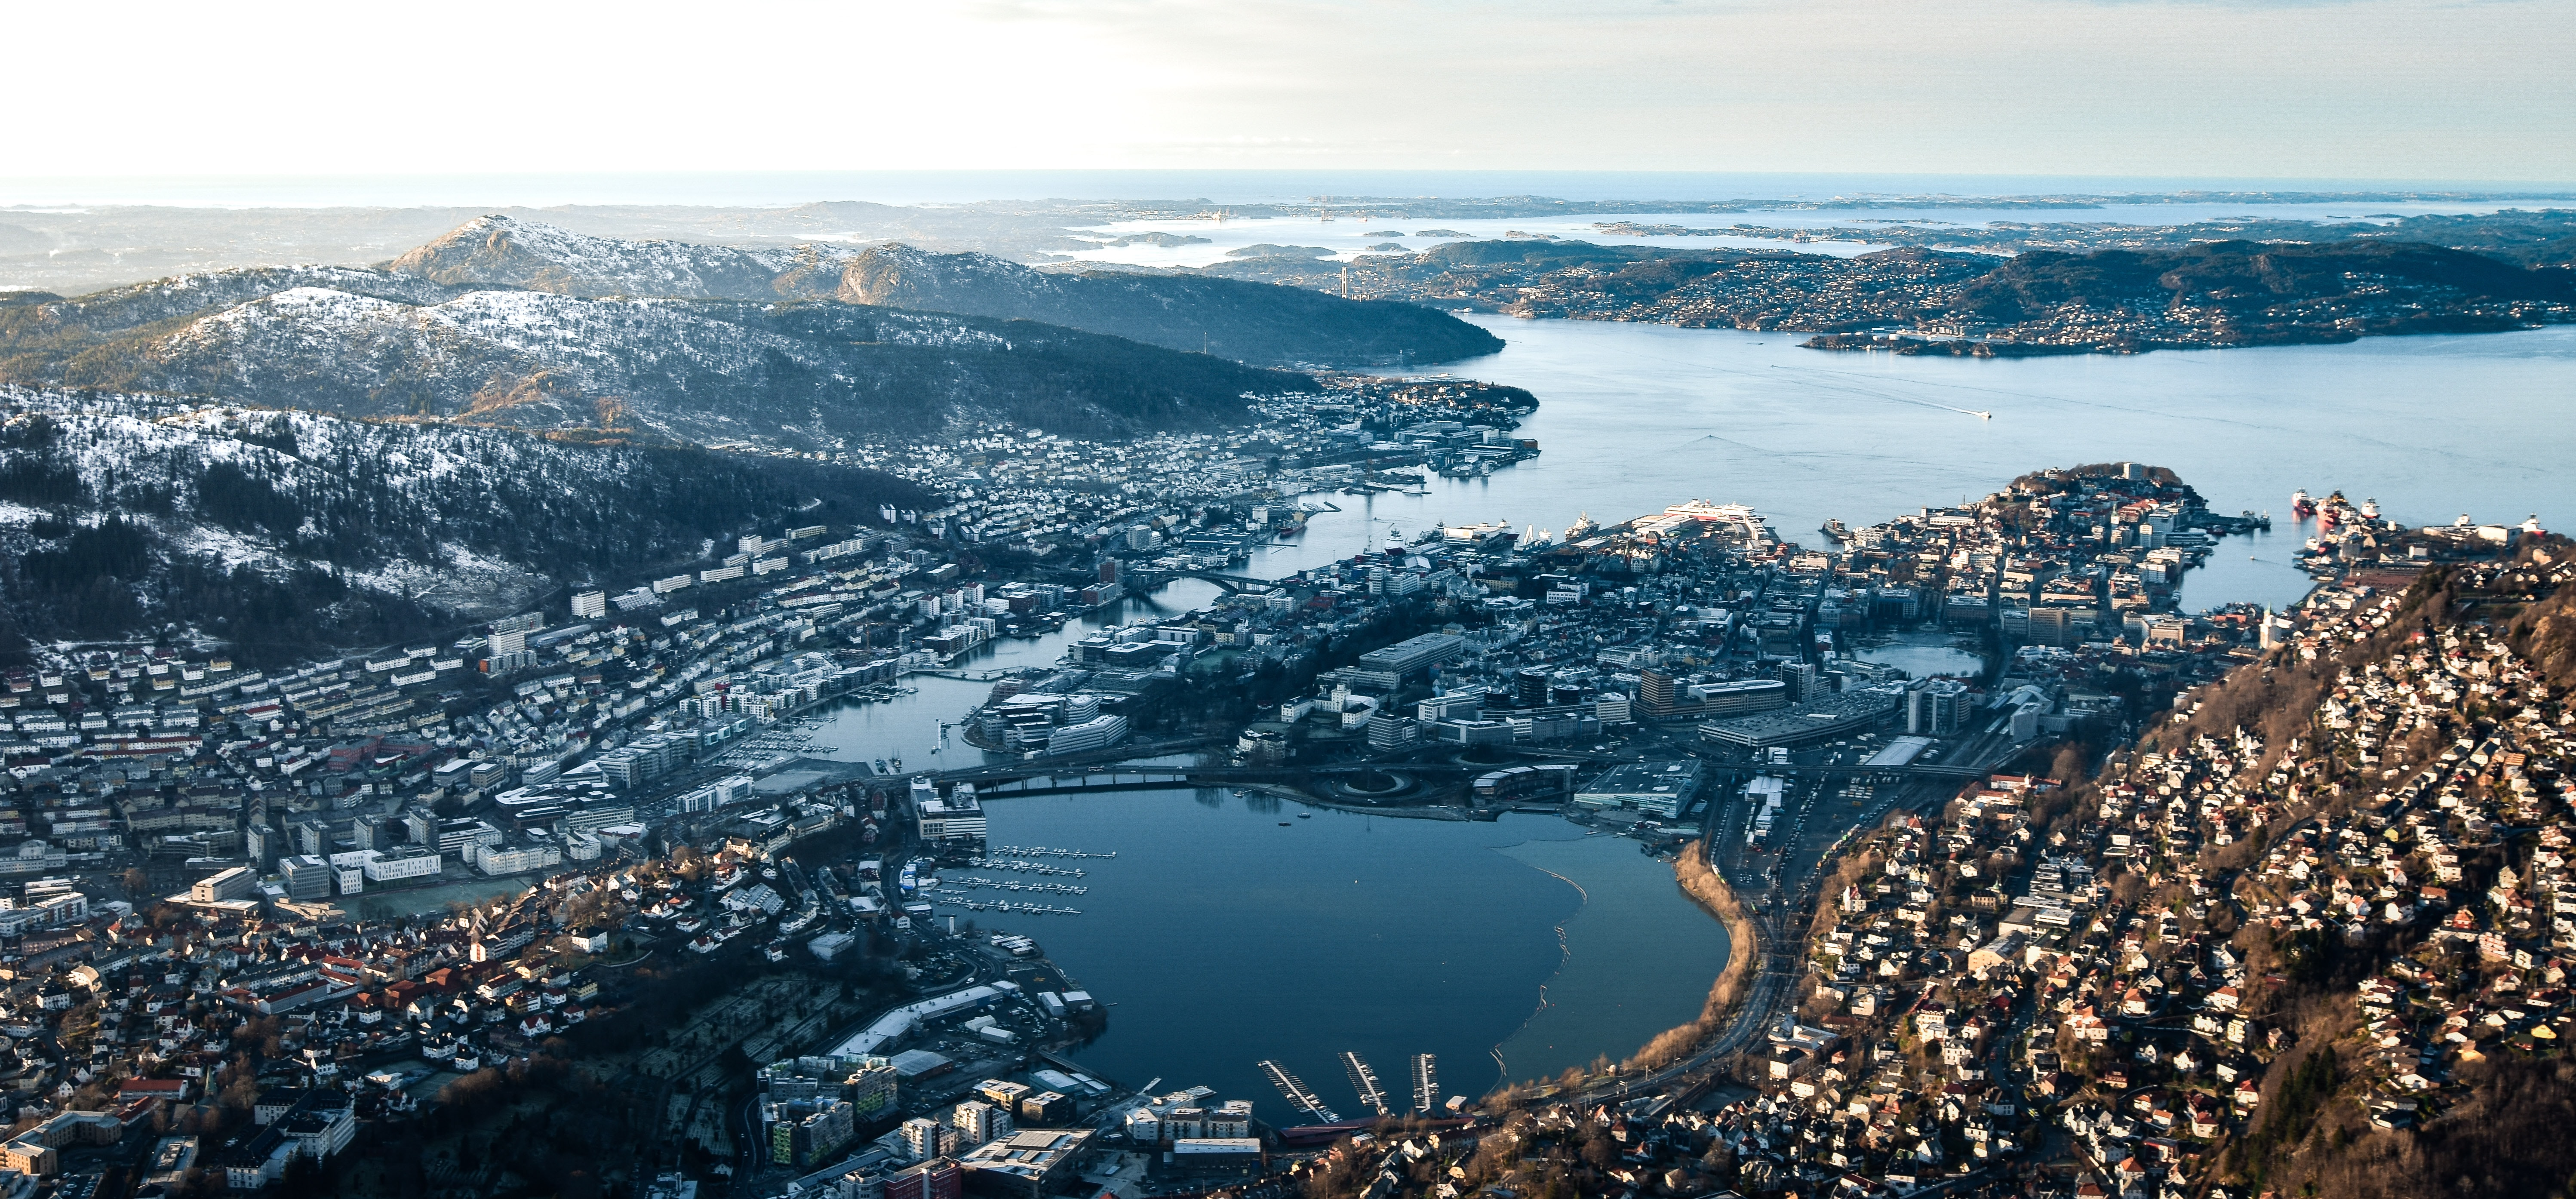 aerial photography of city and mountain